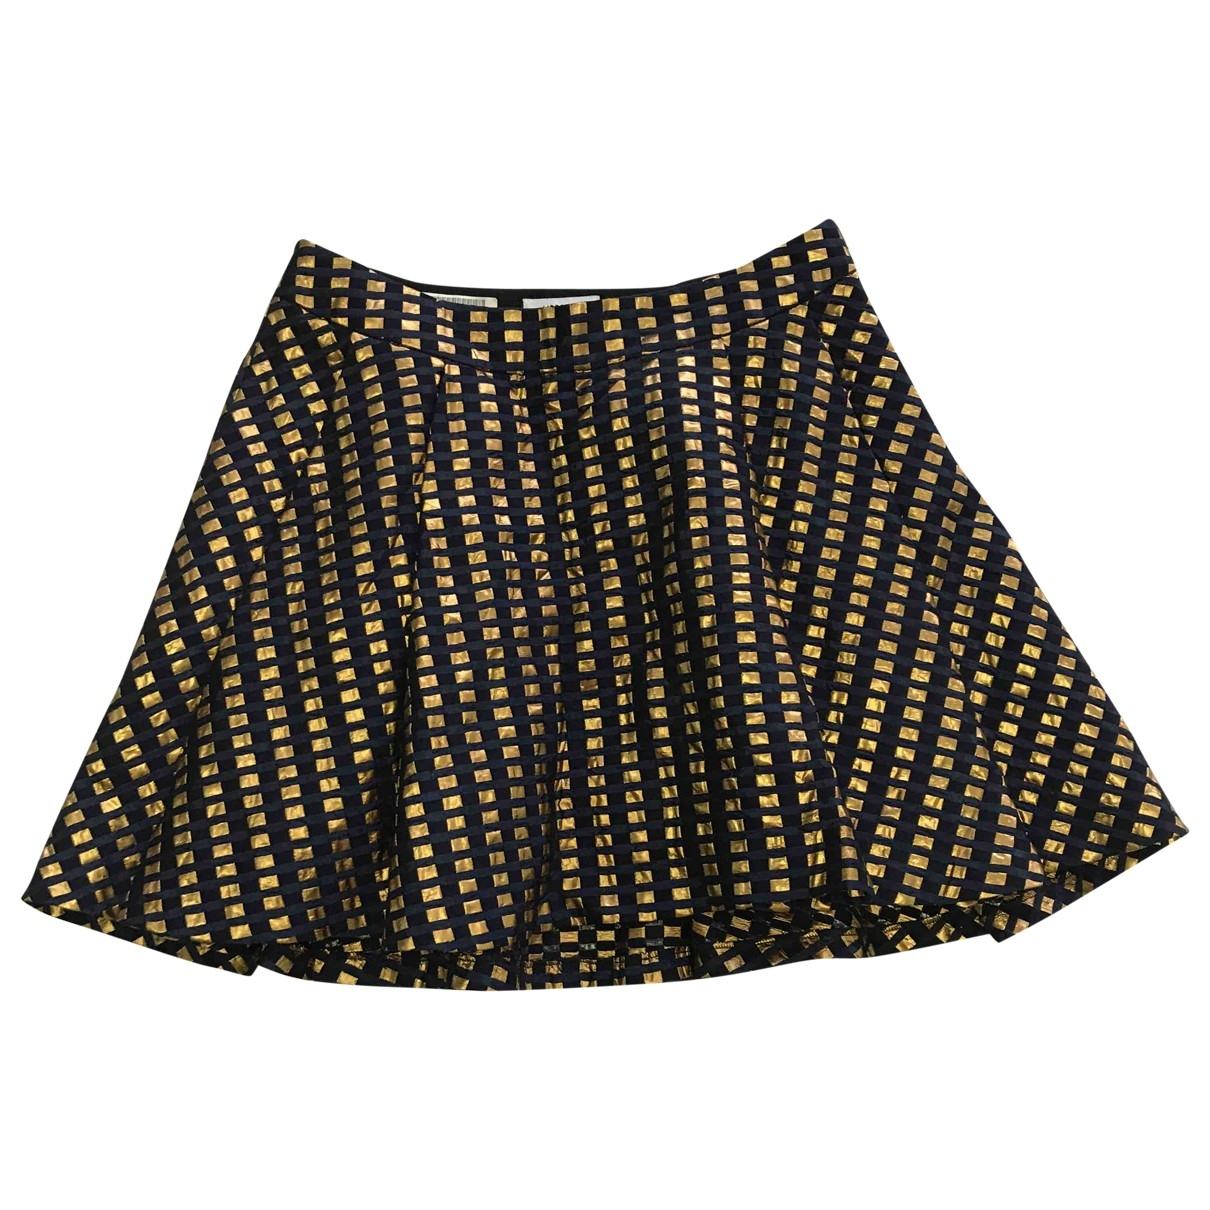 Moschino \N Multicolour Cotton skirt for Women 40 IT